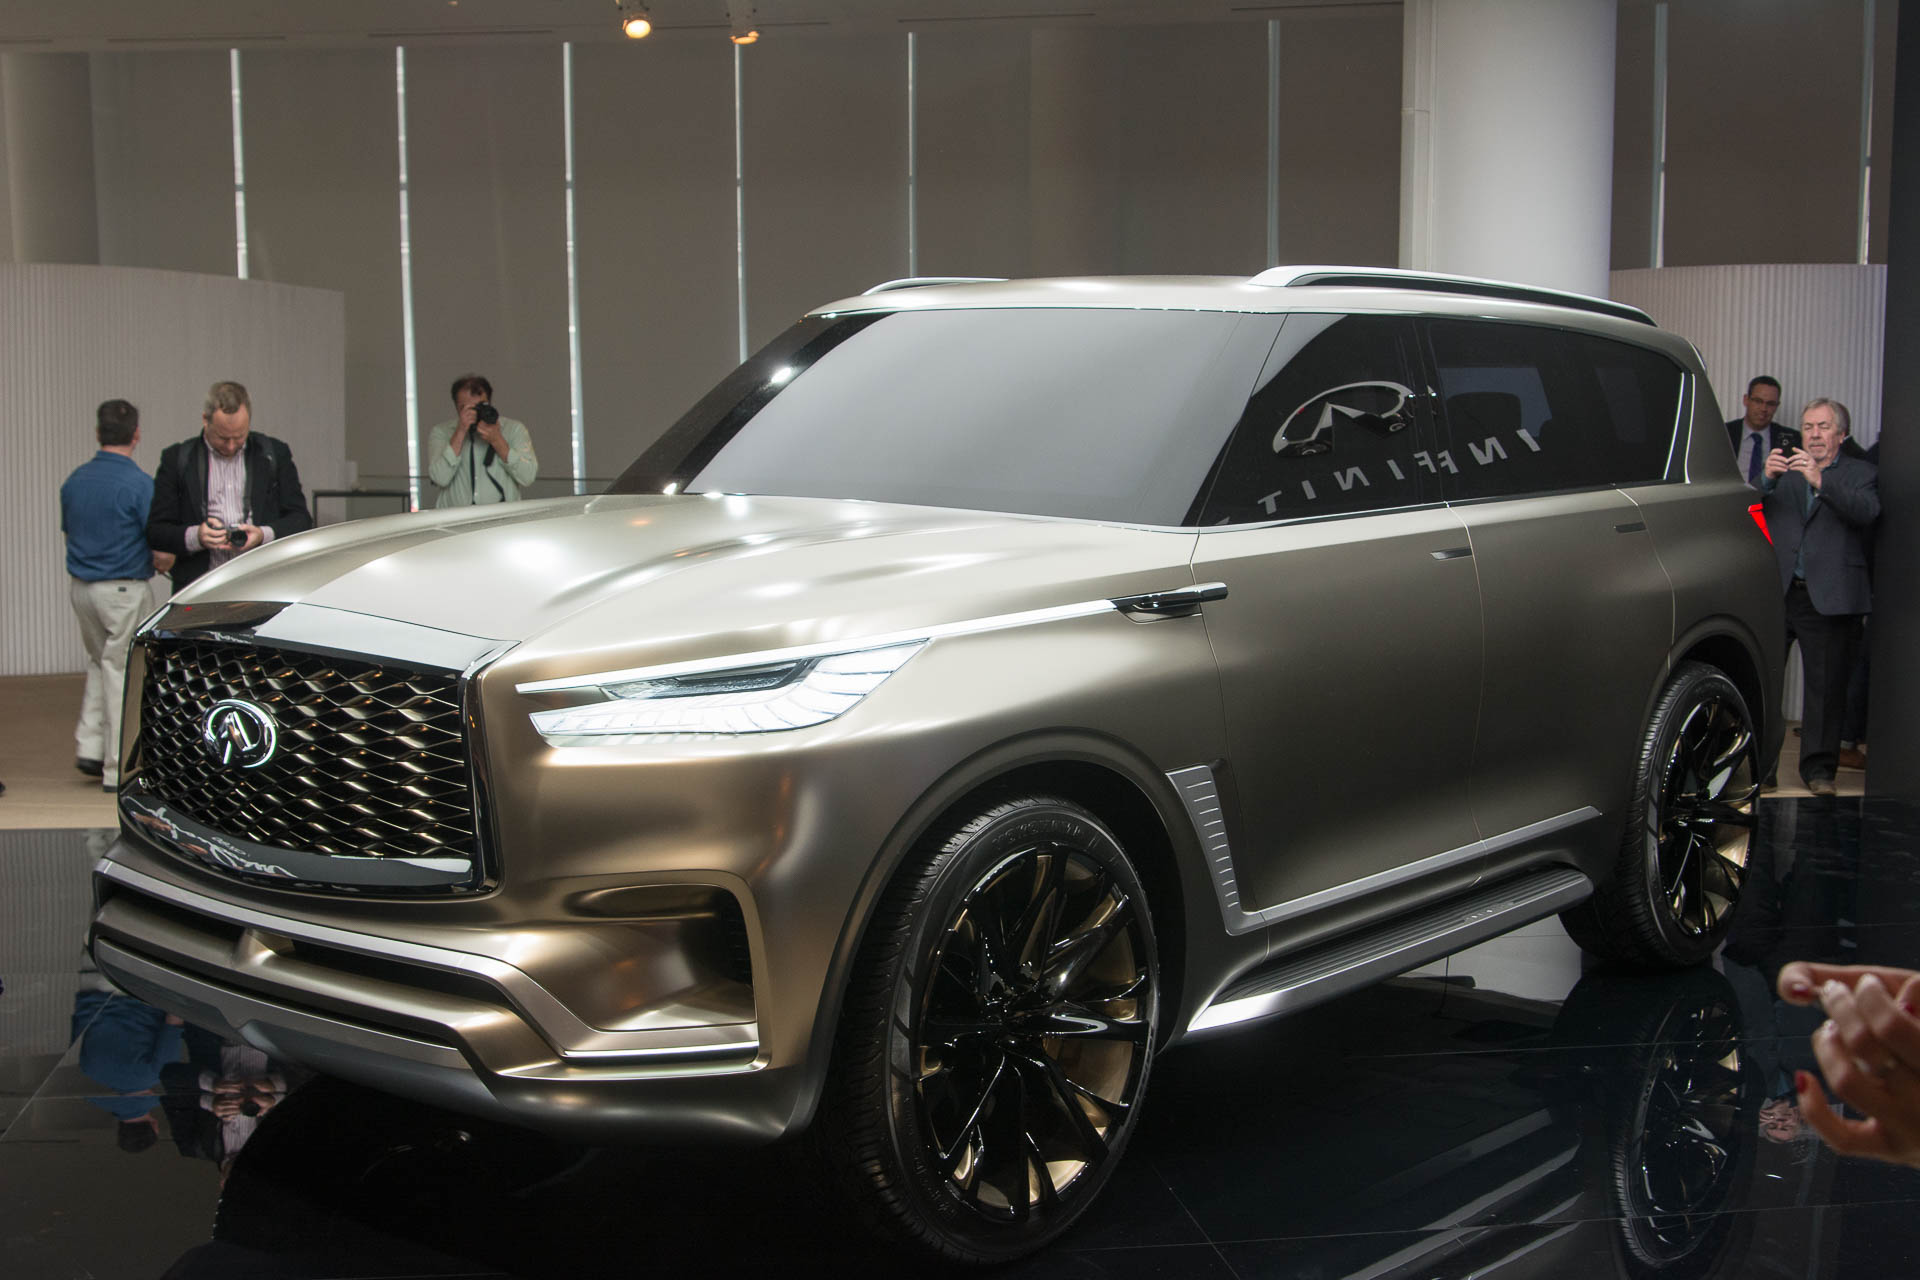 21 New New Infiniti Suv 2020 New Concept for New Infiniti Suv 2020